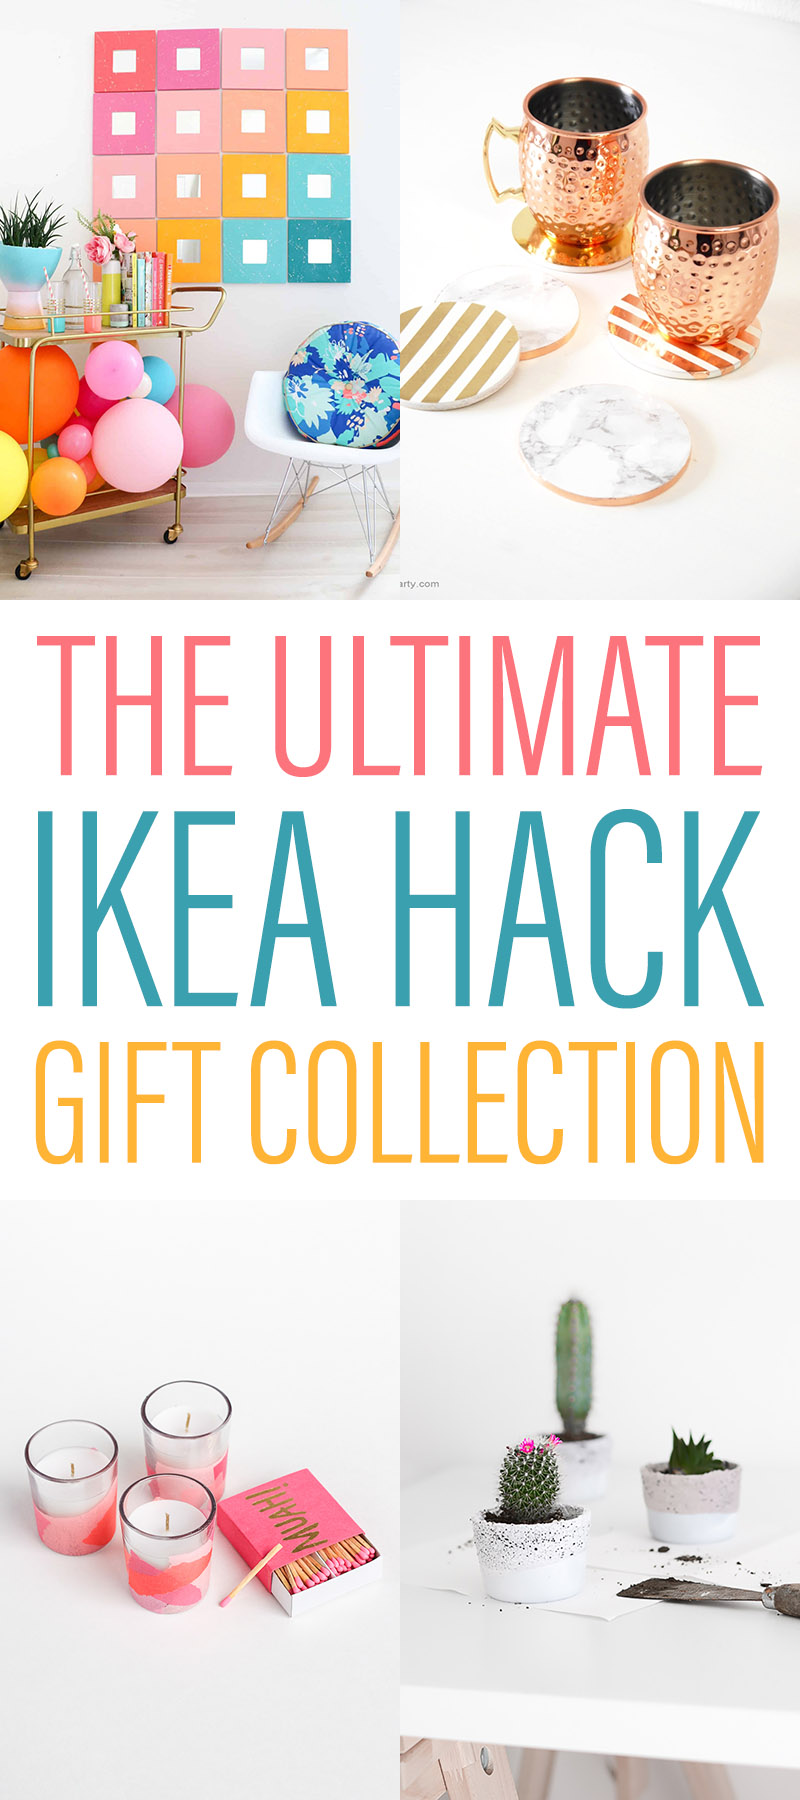 The Ultimate IKEA Hack Gift Collection is waiting for you! You will find a whole bunch of fabulous IKEA Hacks that make the perfect gift! Budget Friendsly!